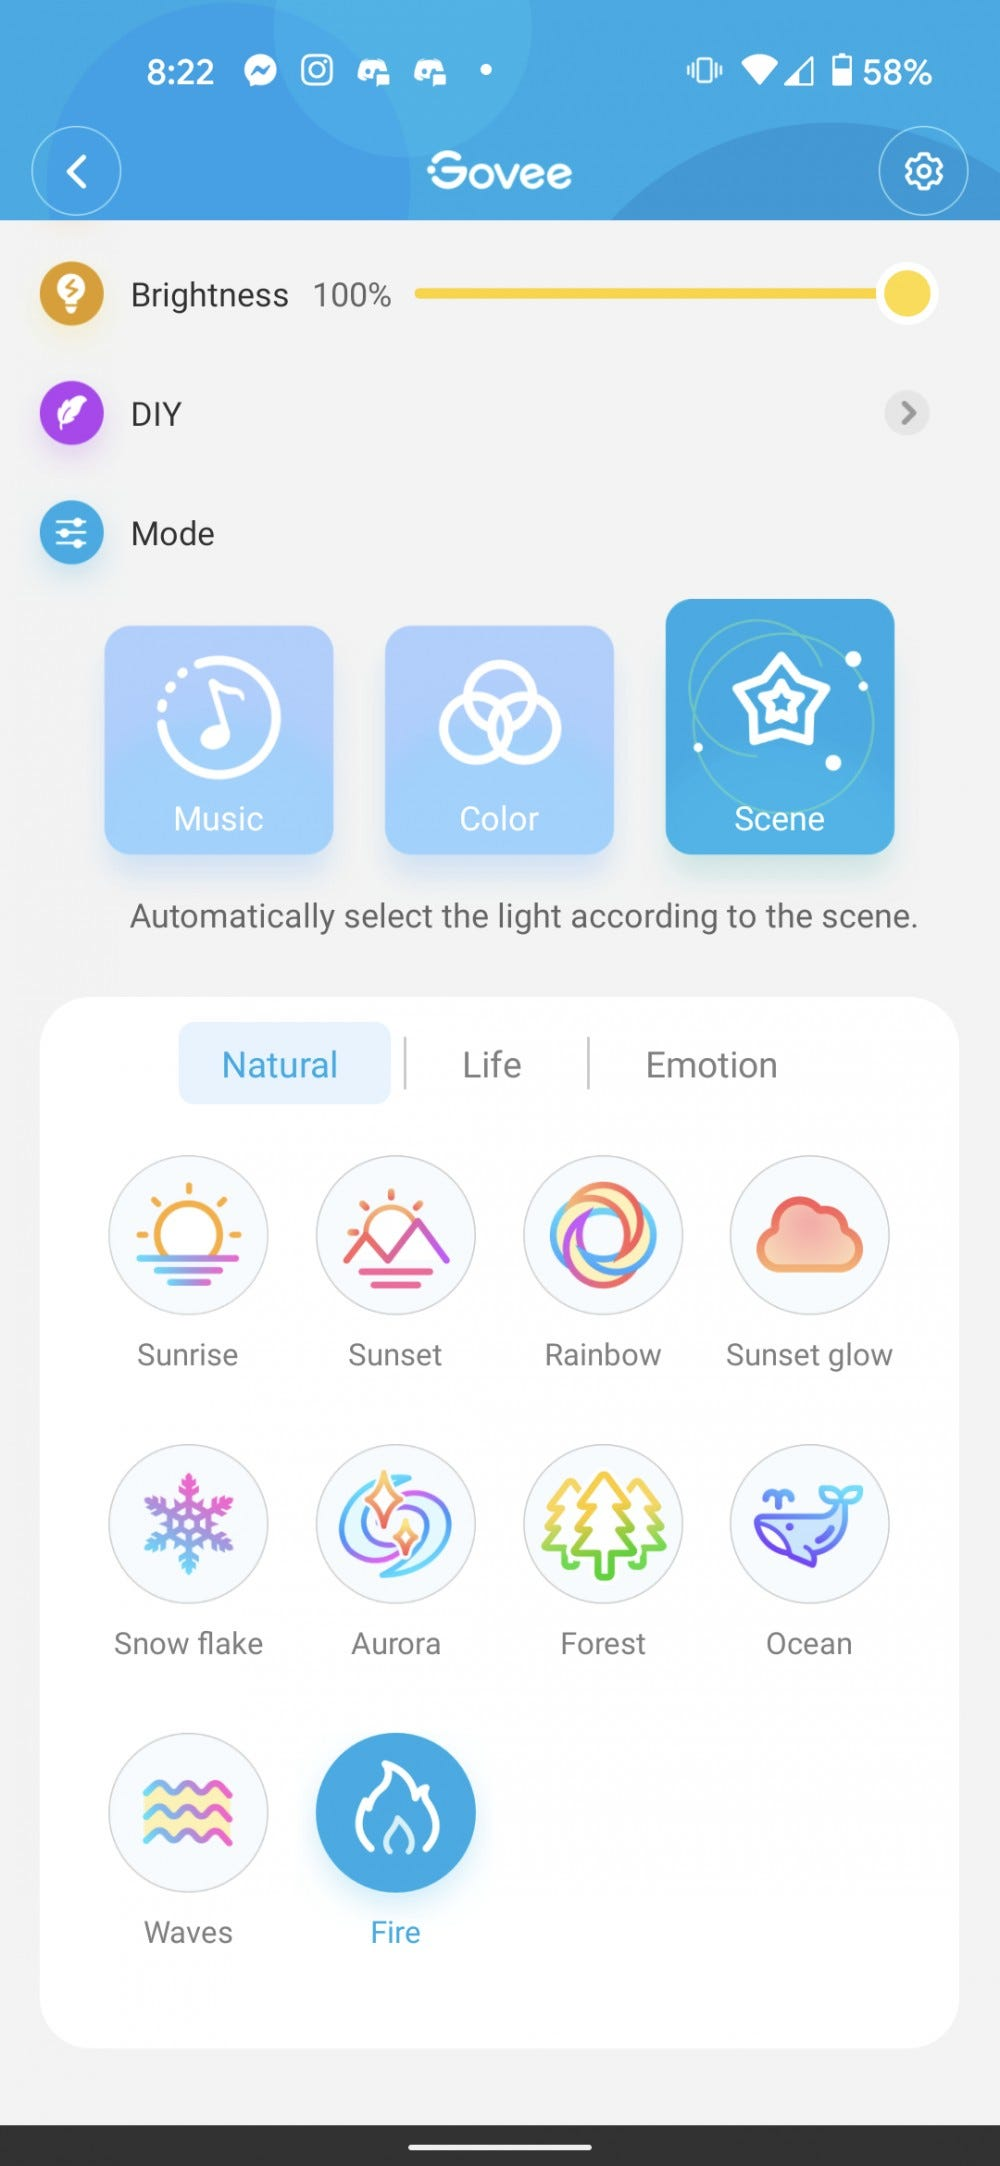 The Govee app showing the Aura Lamp's scenes